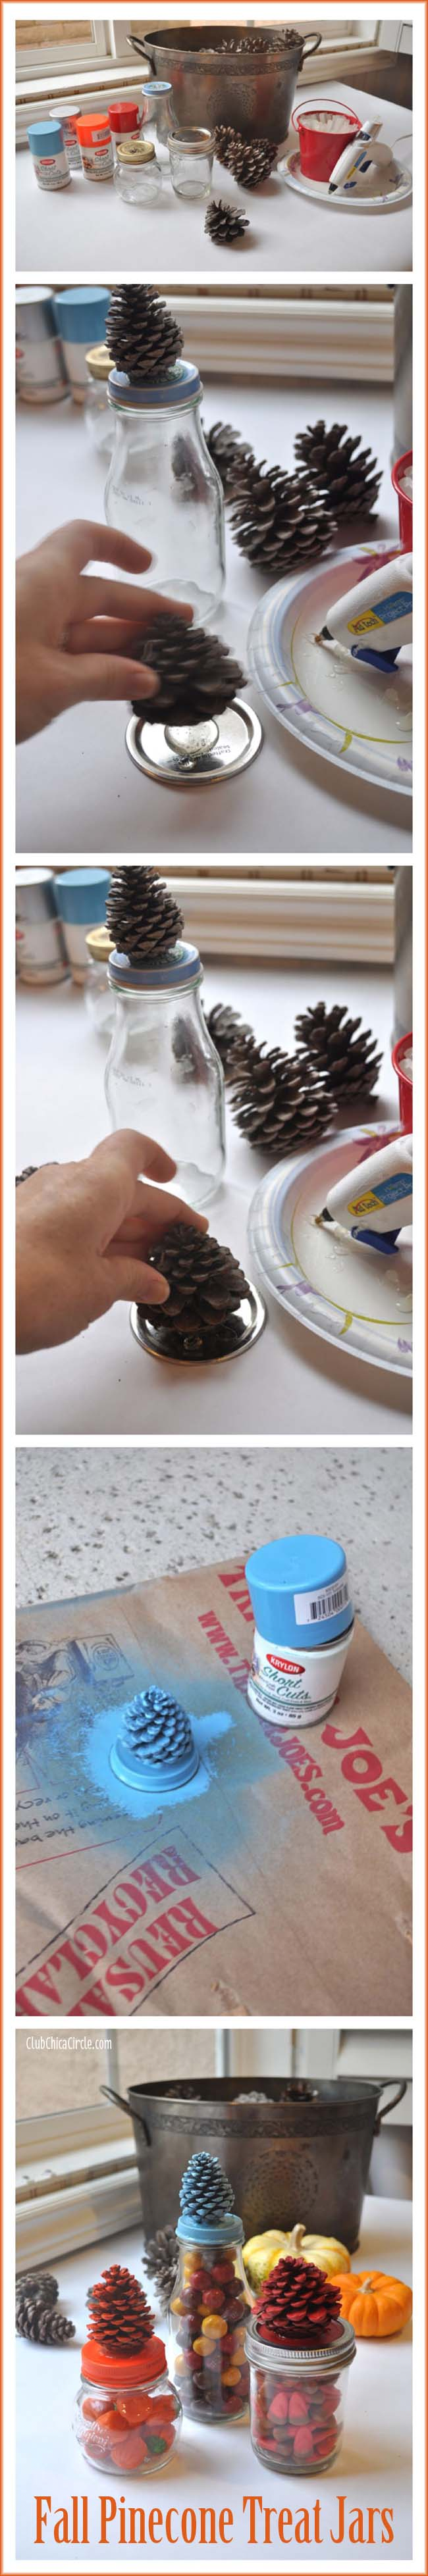 Pine Cone Treat Jars Fall Craft Idea